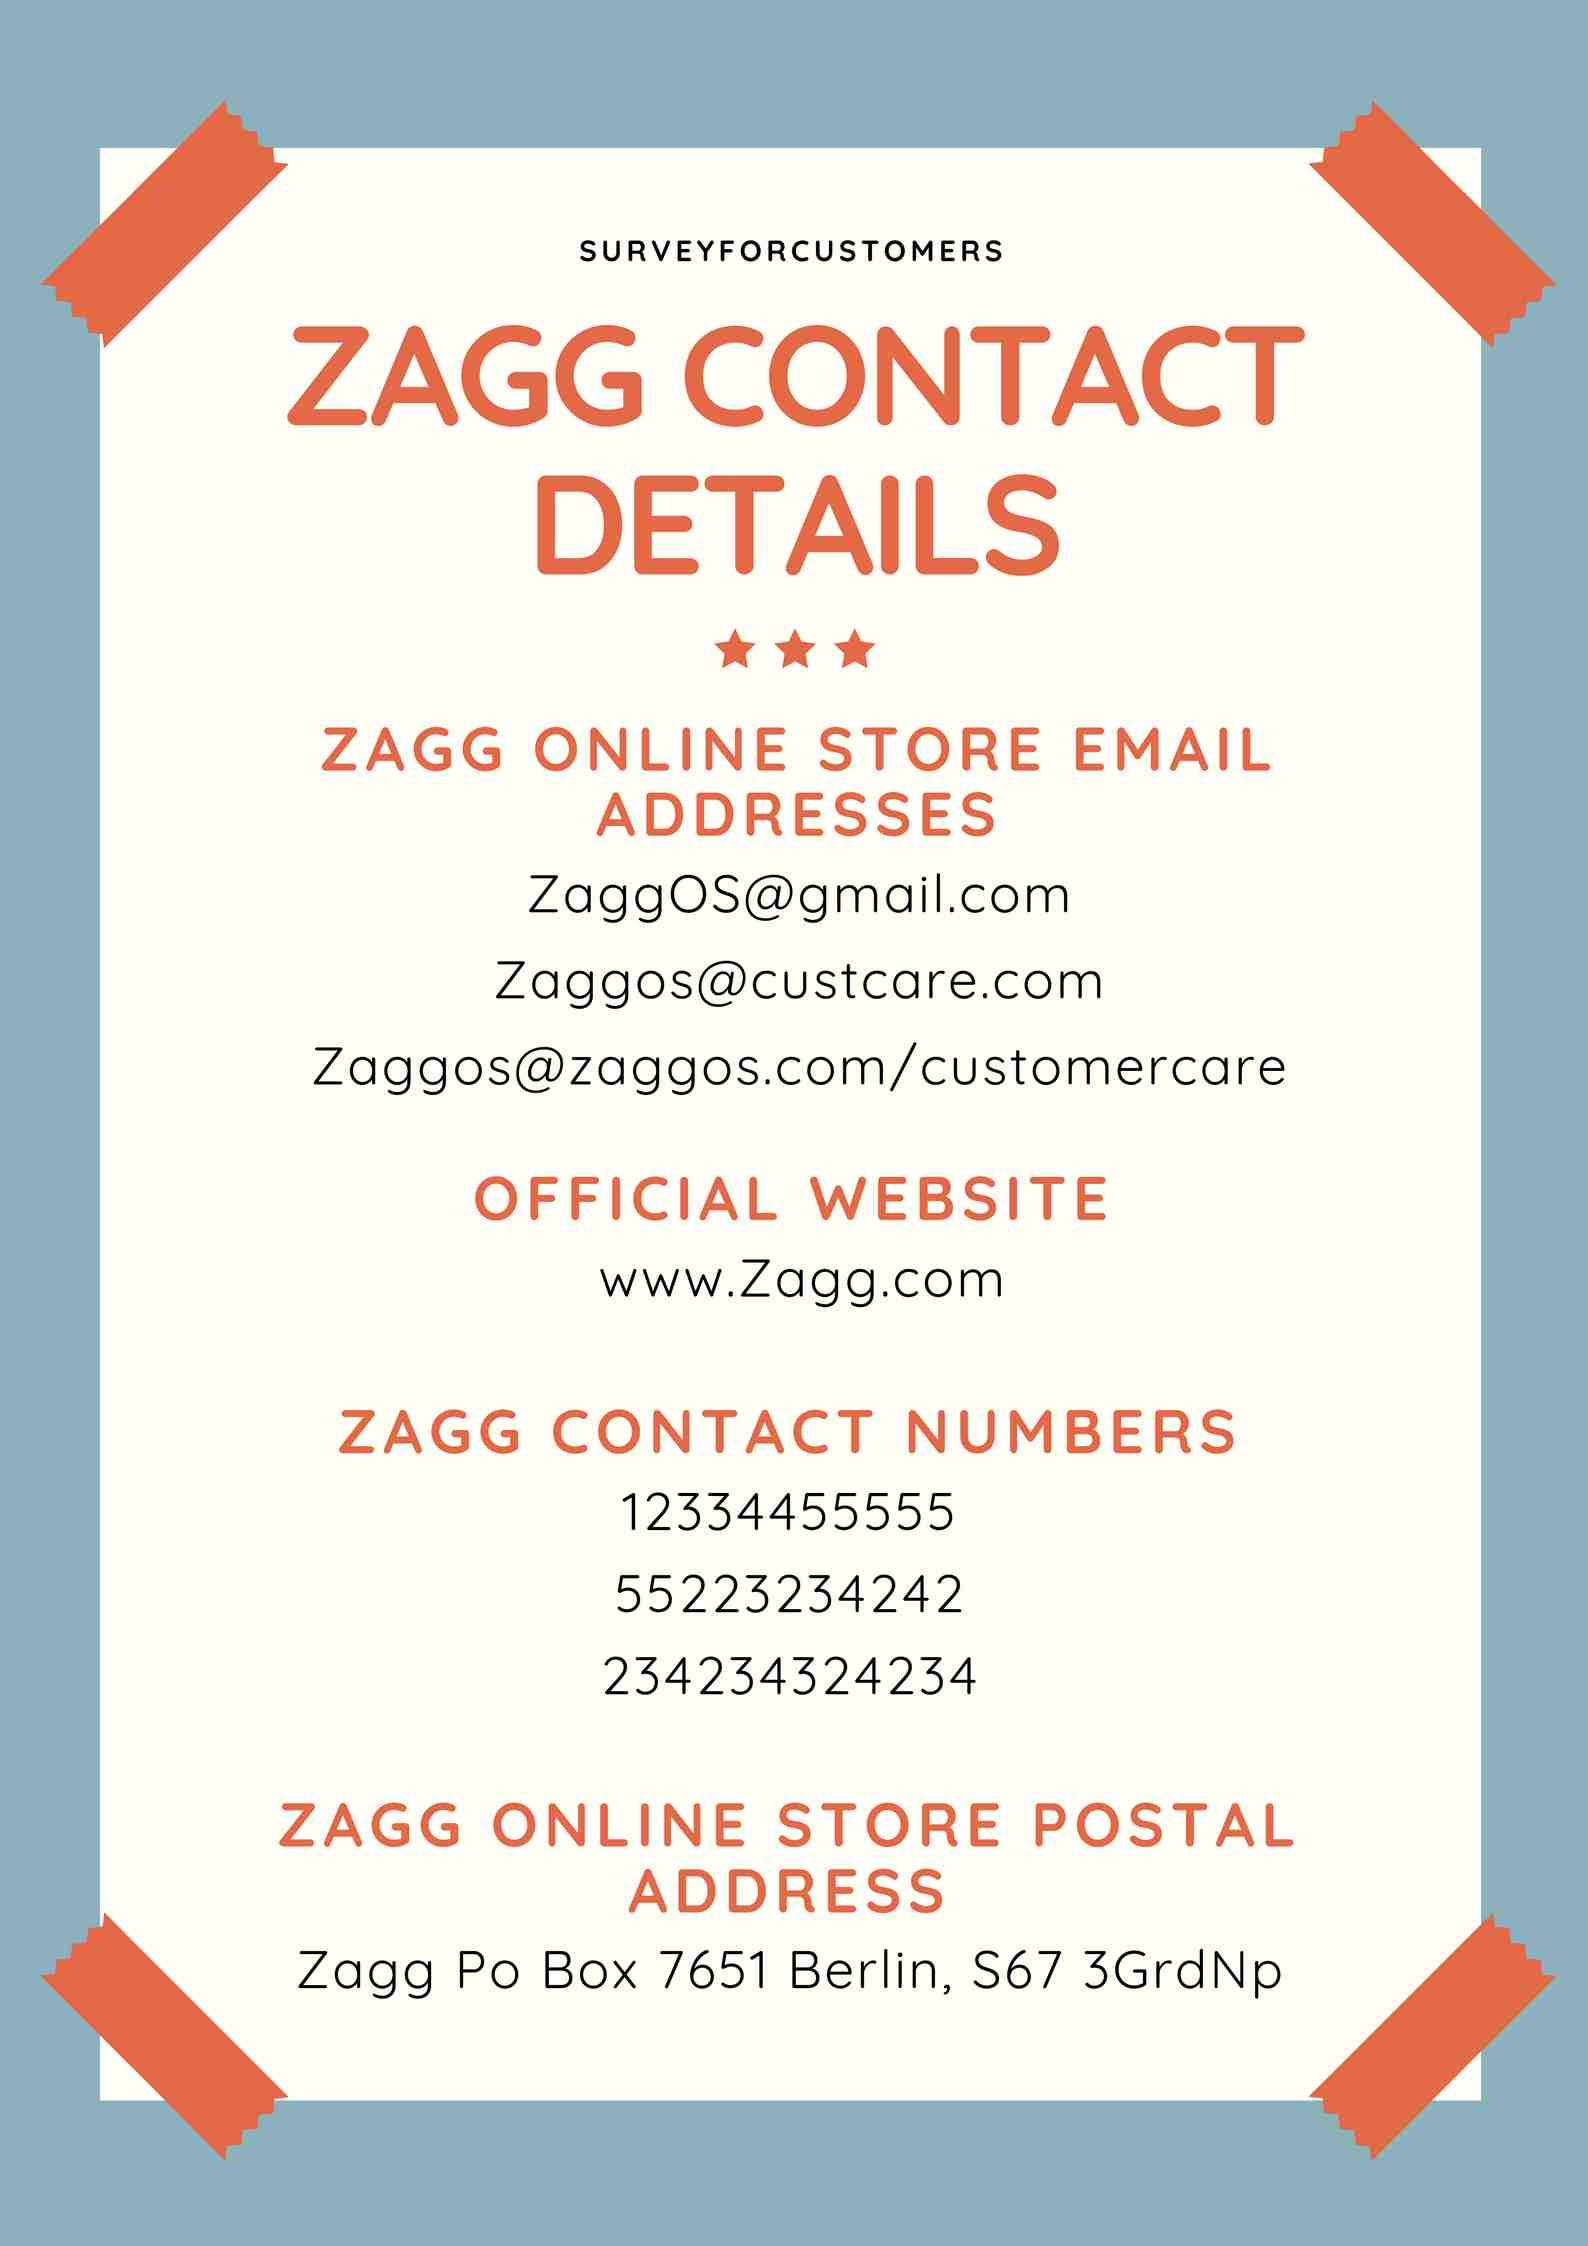 About Zagg Online Store